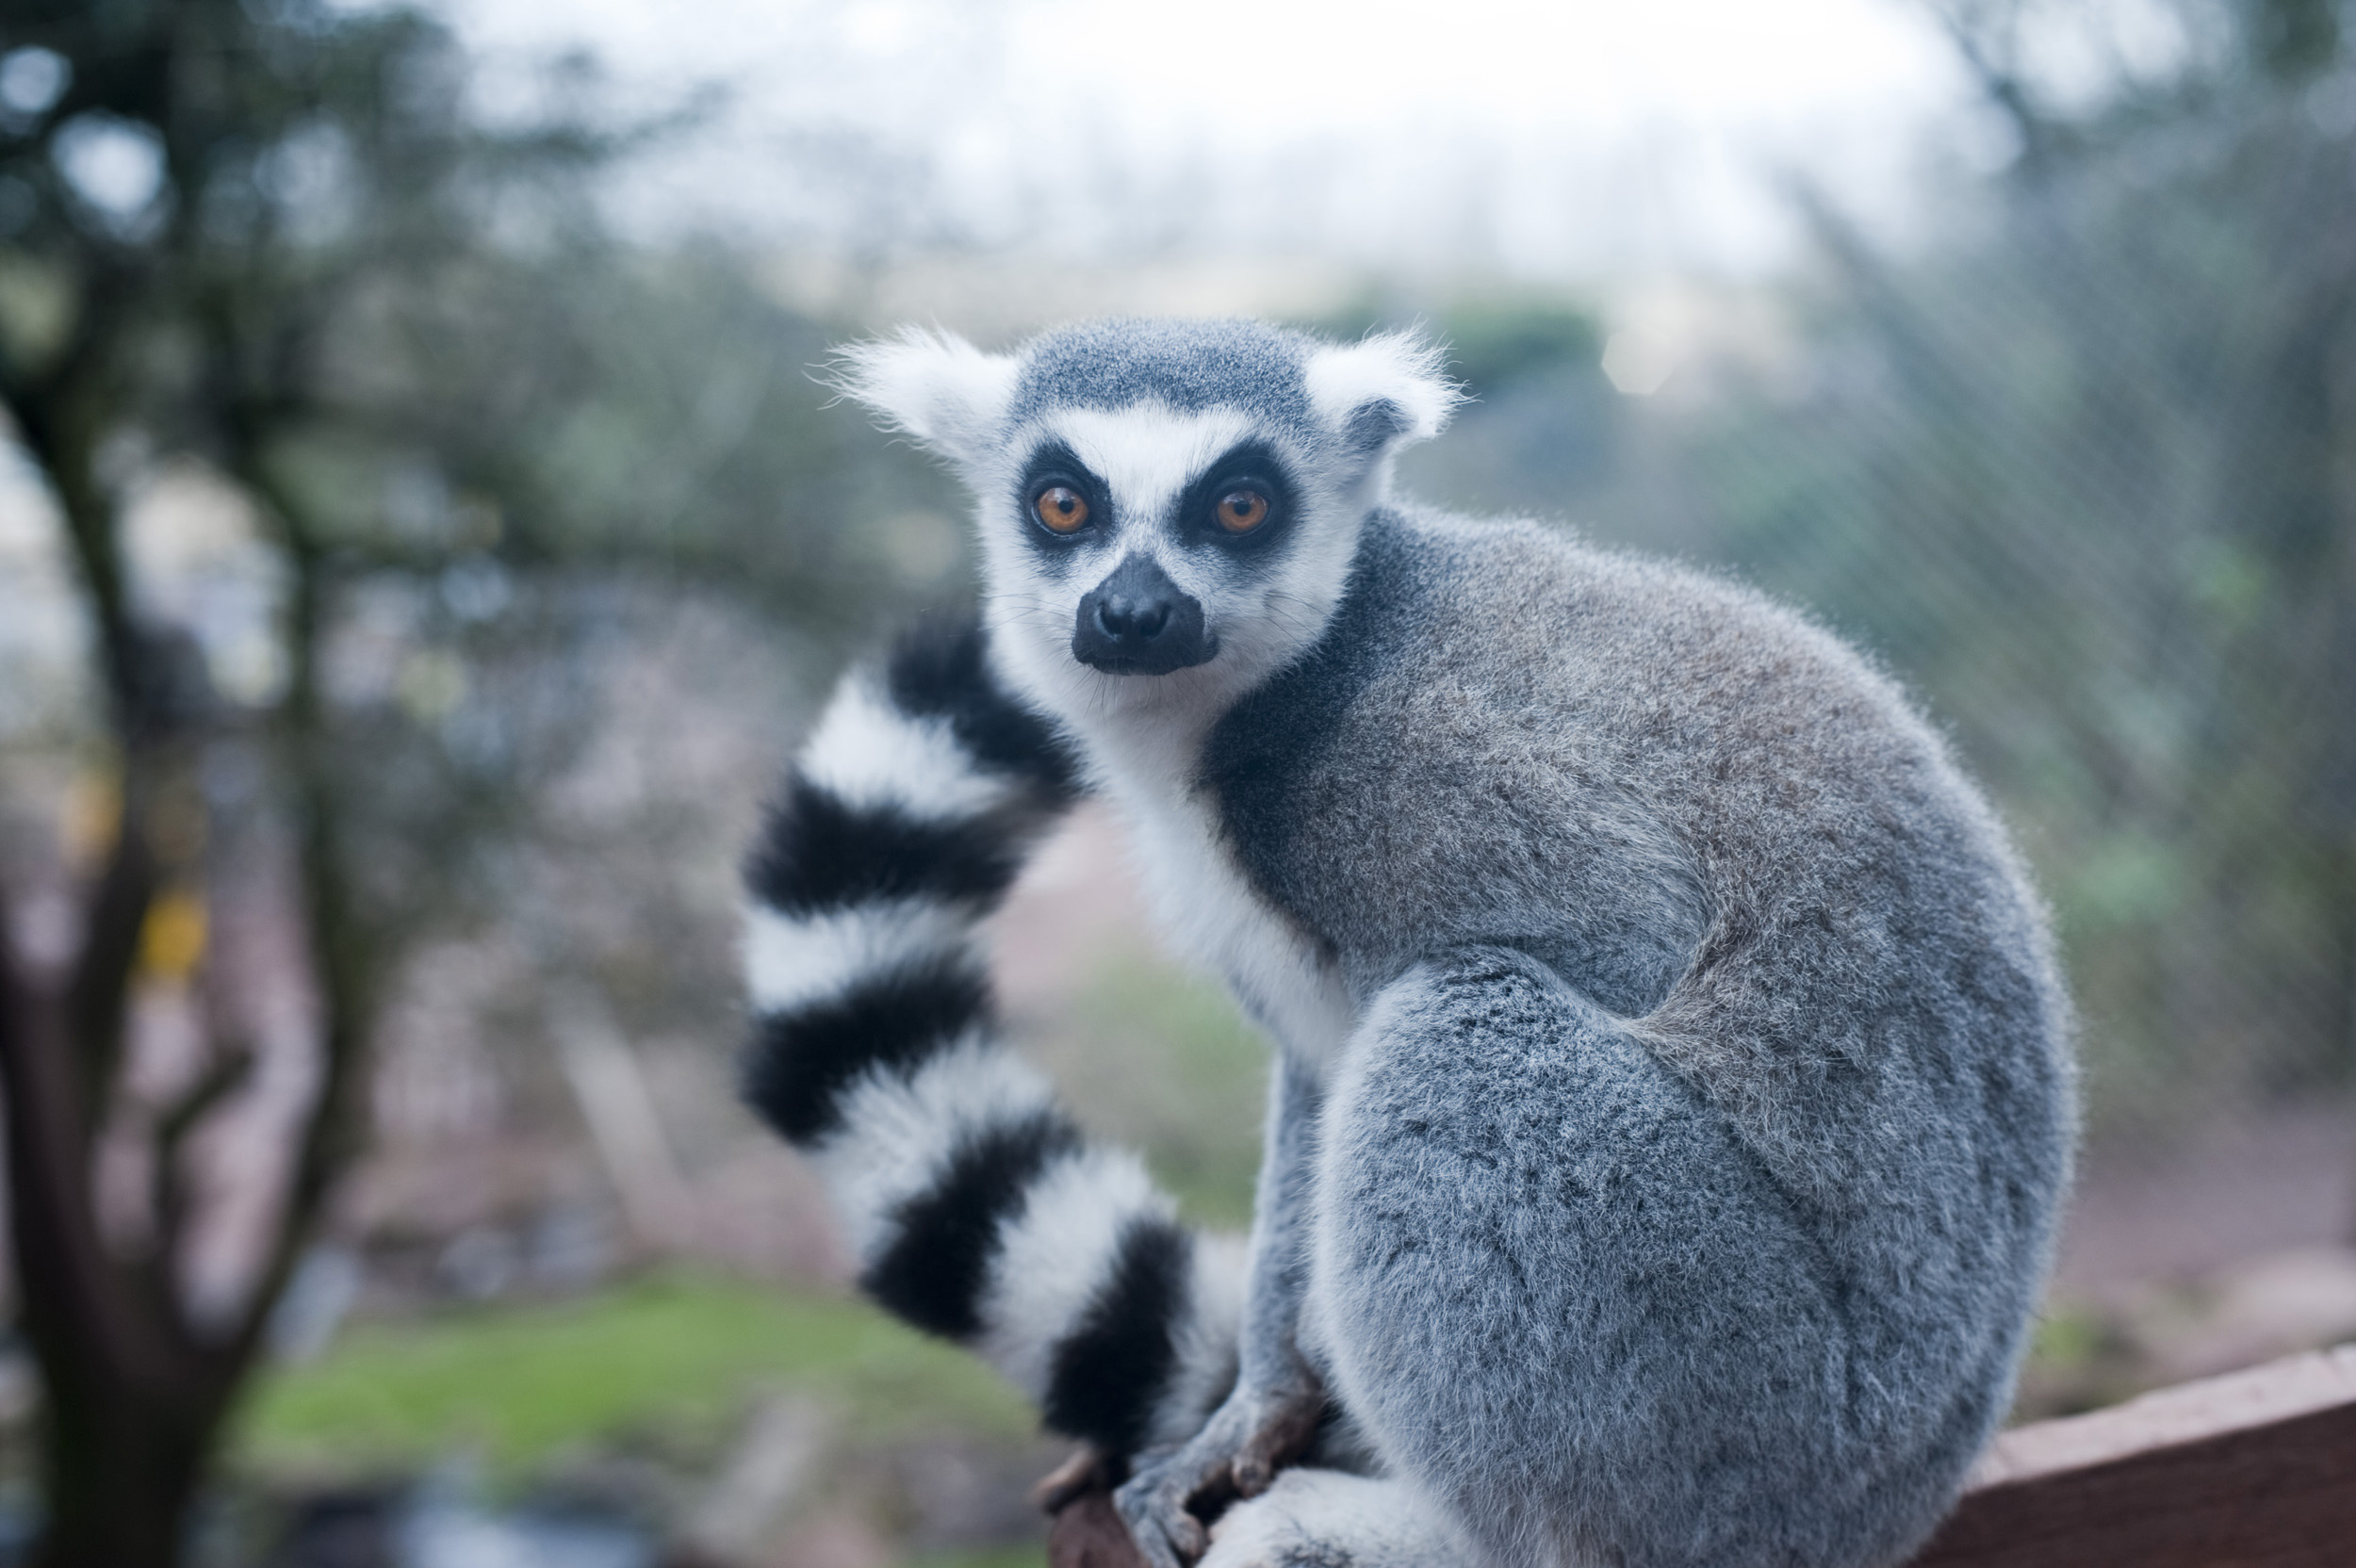 Lemurs also use their tail as a form of communication.